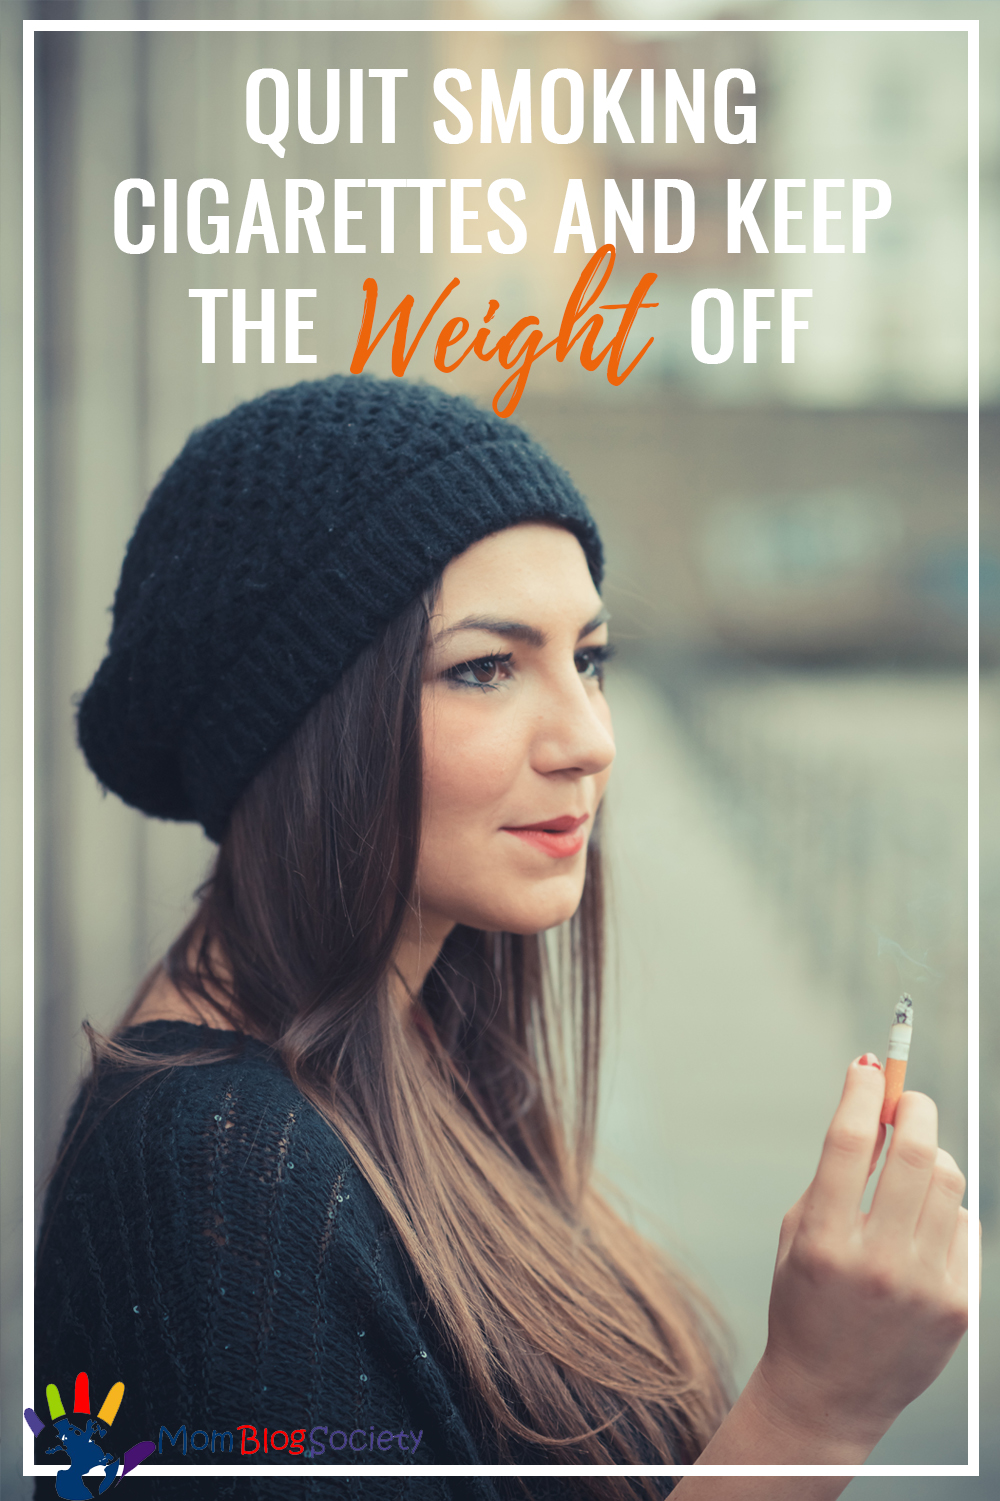 Quit Smoking Cigarettes and Keep the Weight Off